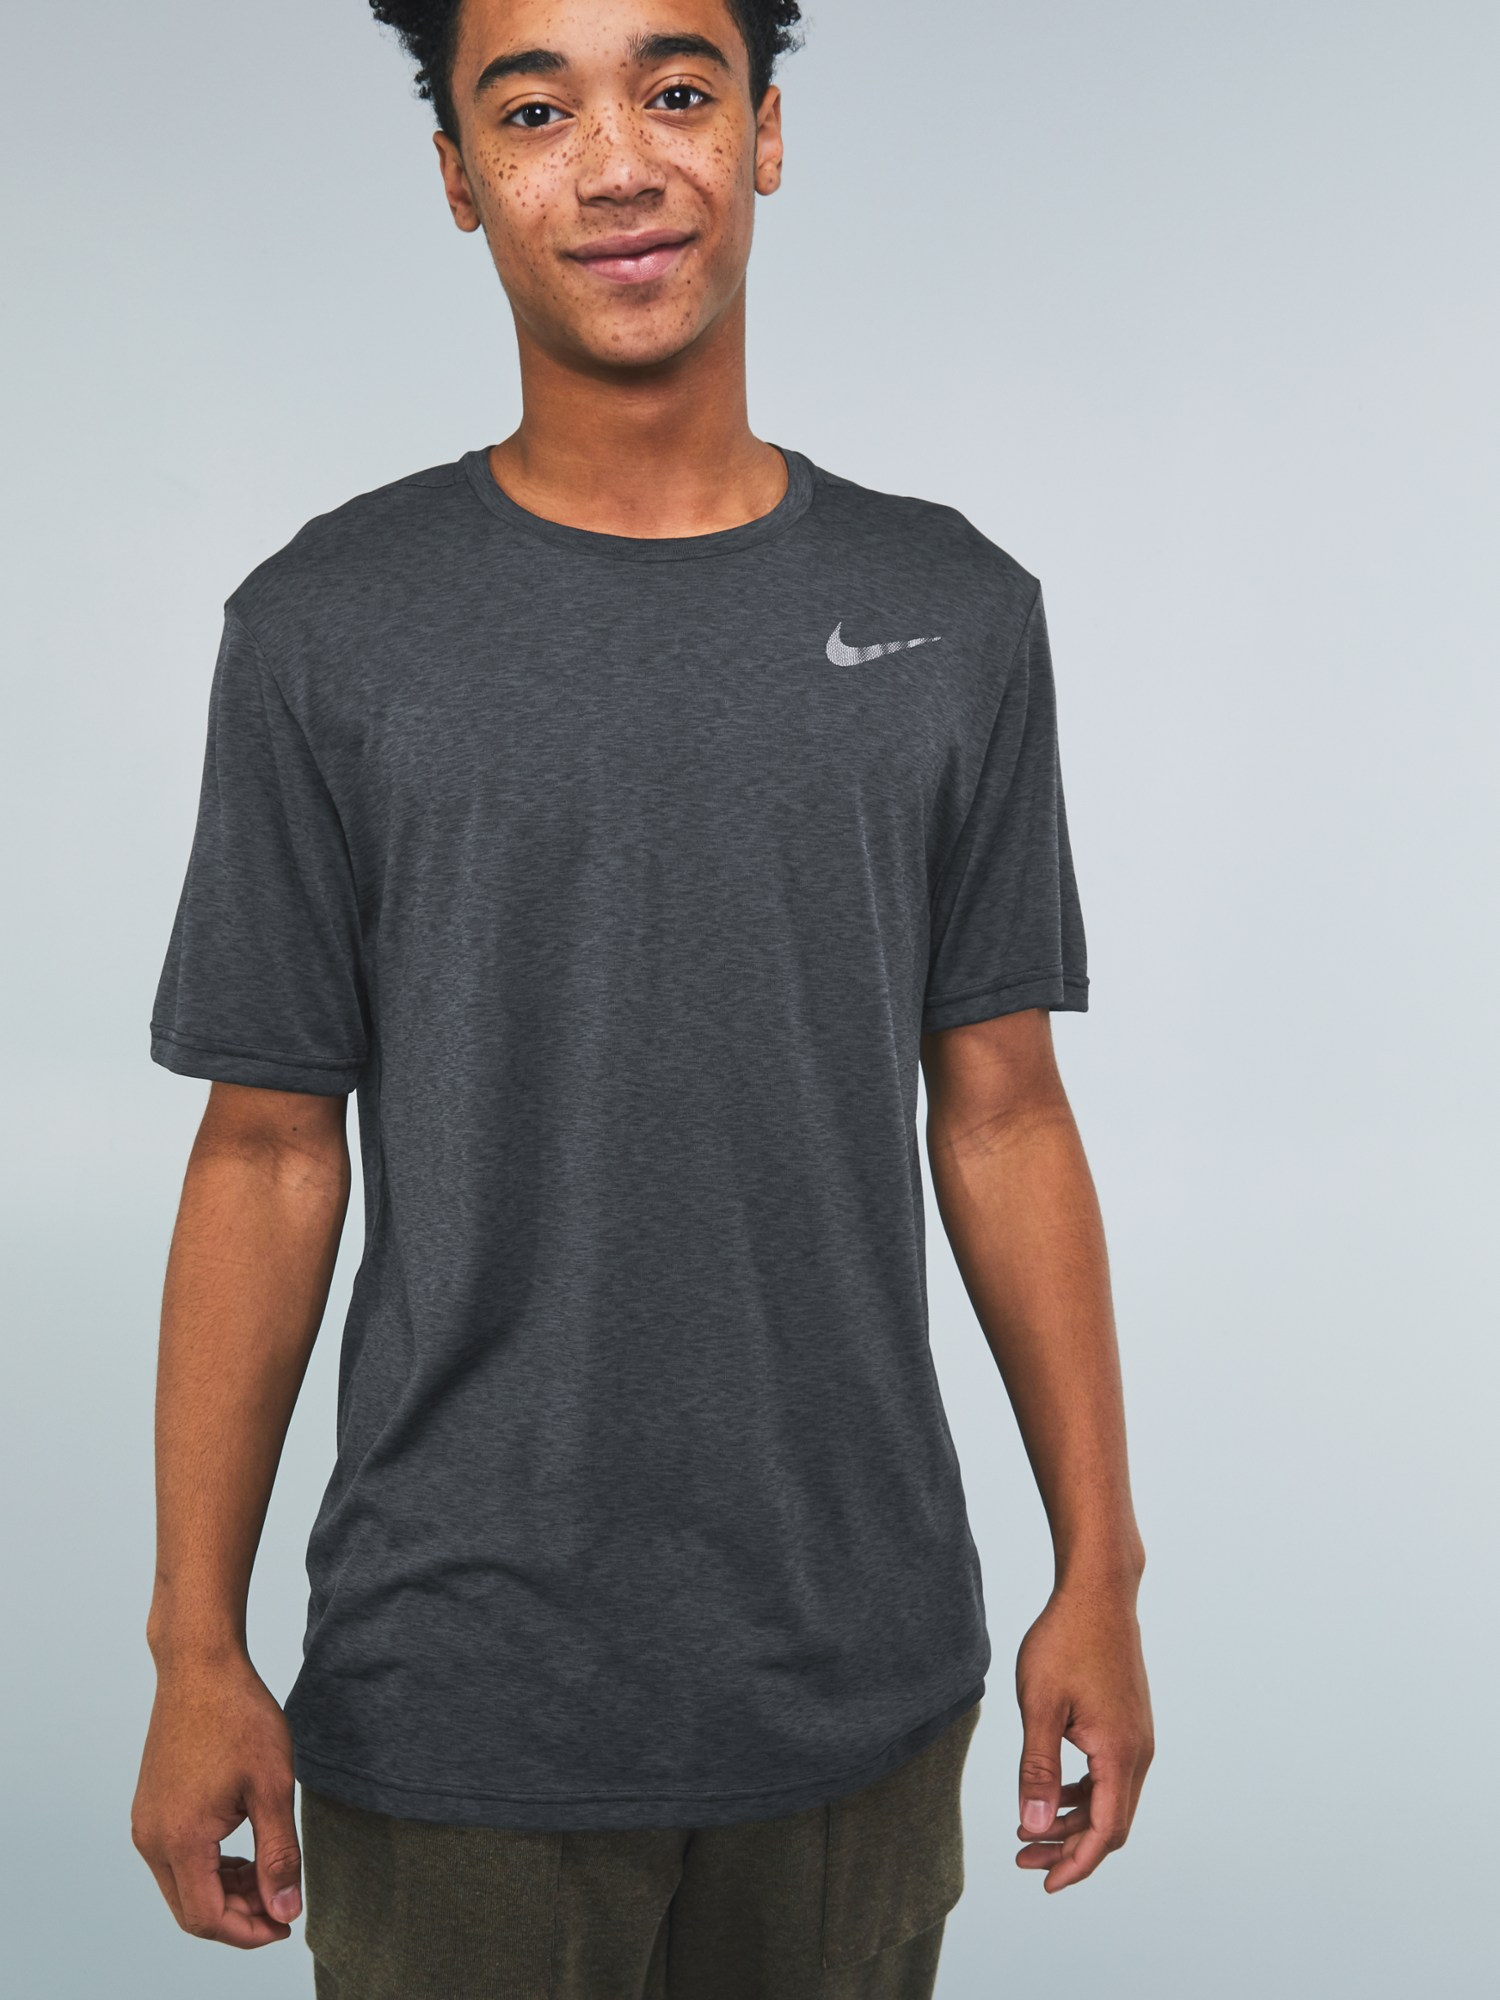 Nike Breathe Hyper Dry T-Shirt - Men's